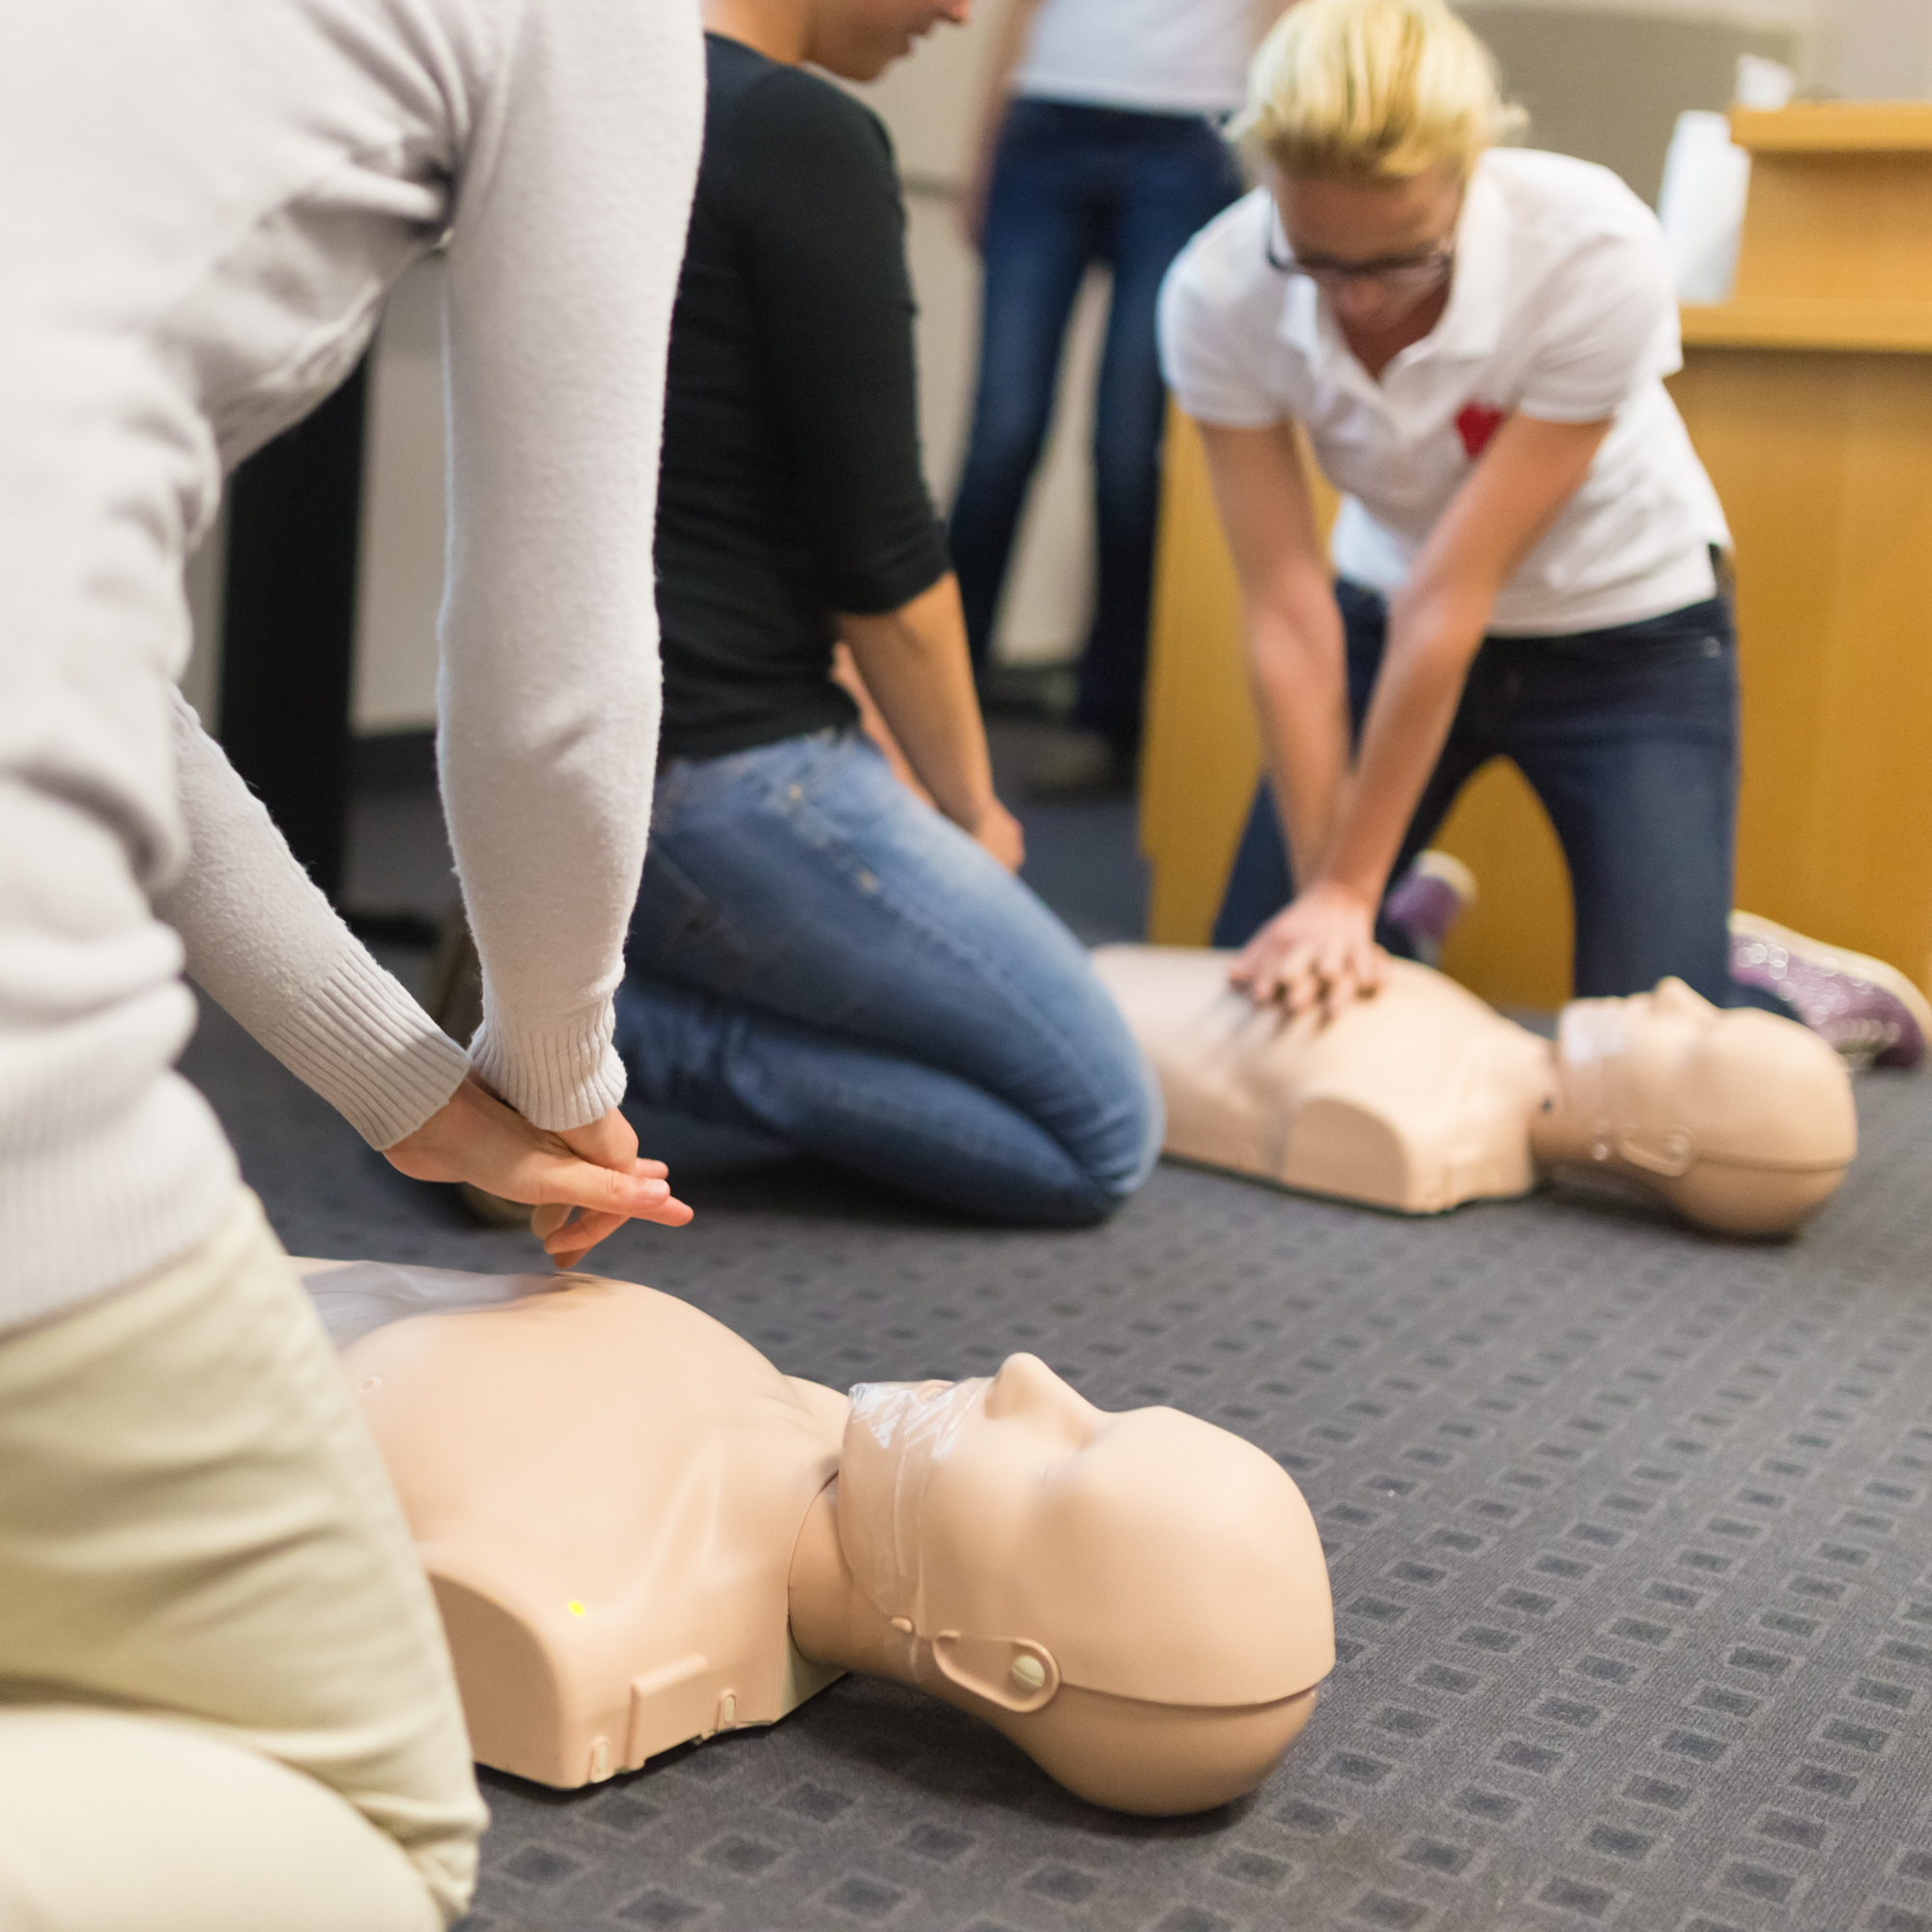 First aid CPR seminar,A group of adult education students practitcing CPR chest compressioon on a dummy.